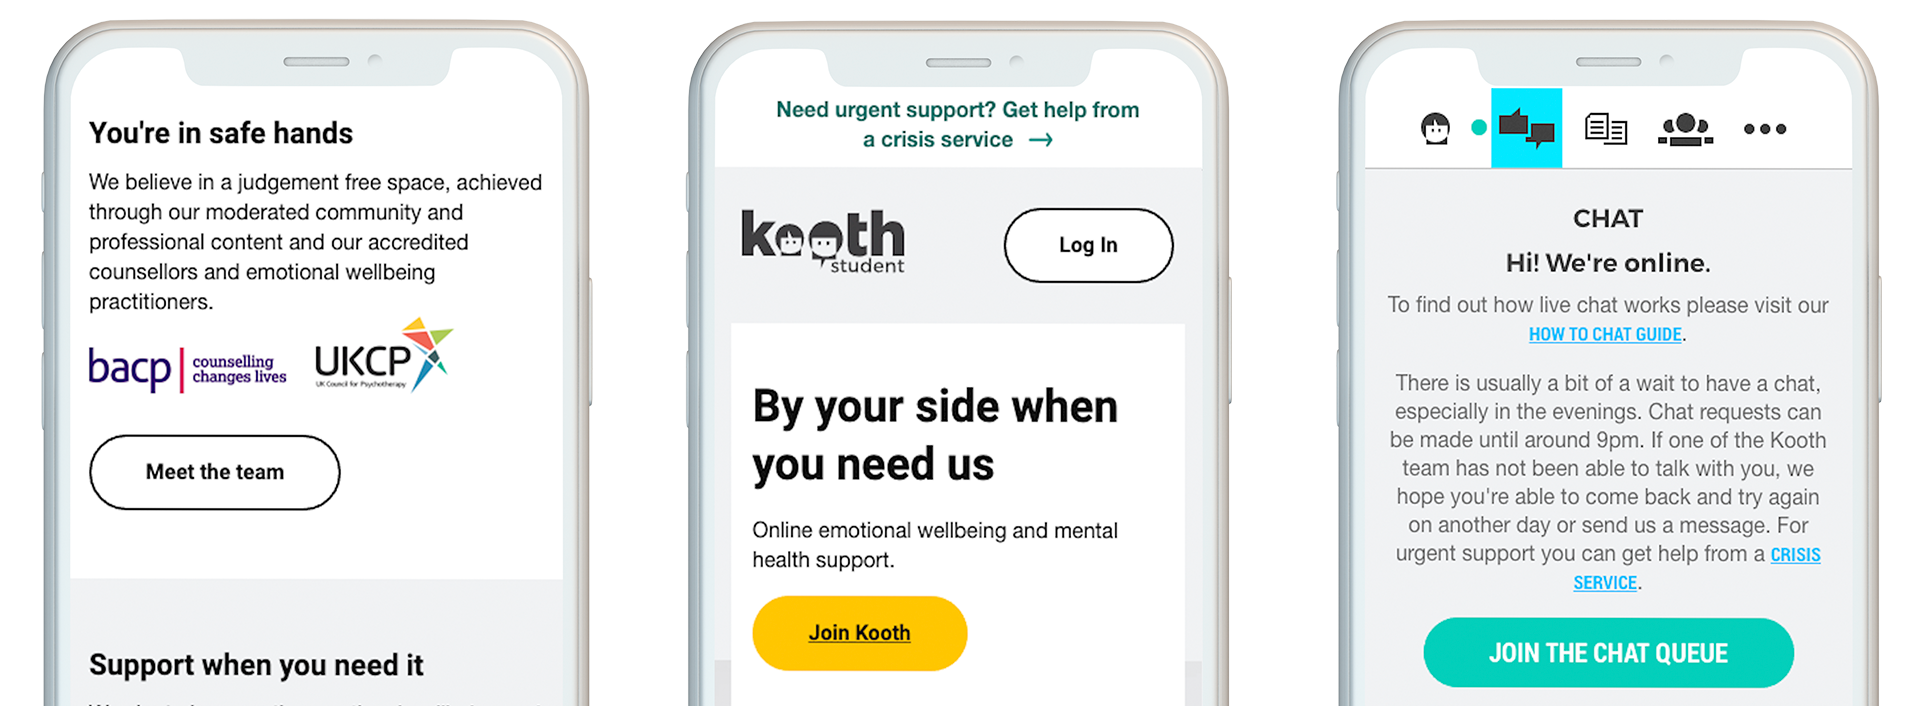 A few features you'll find on Kooth Student include mini-activities, access to discussions, as well as articles written by students and the Kooth team.